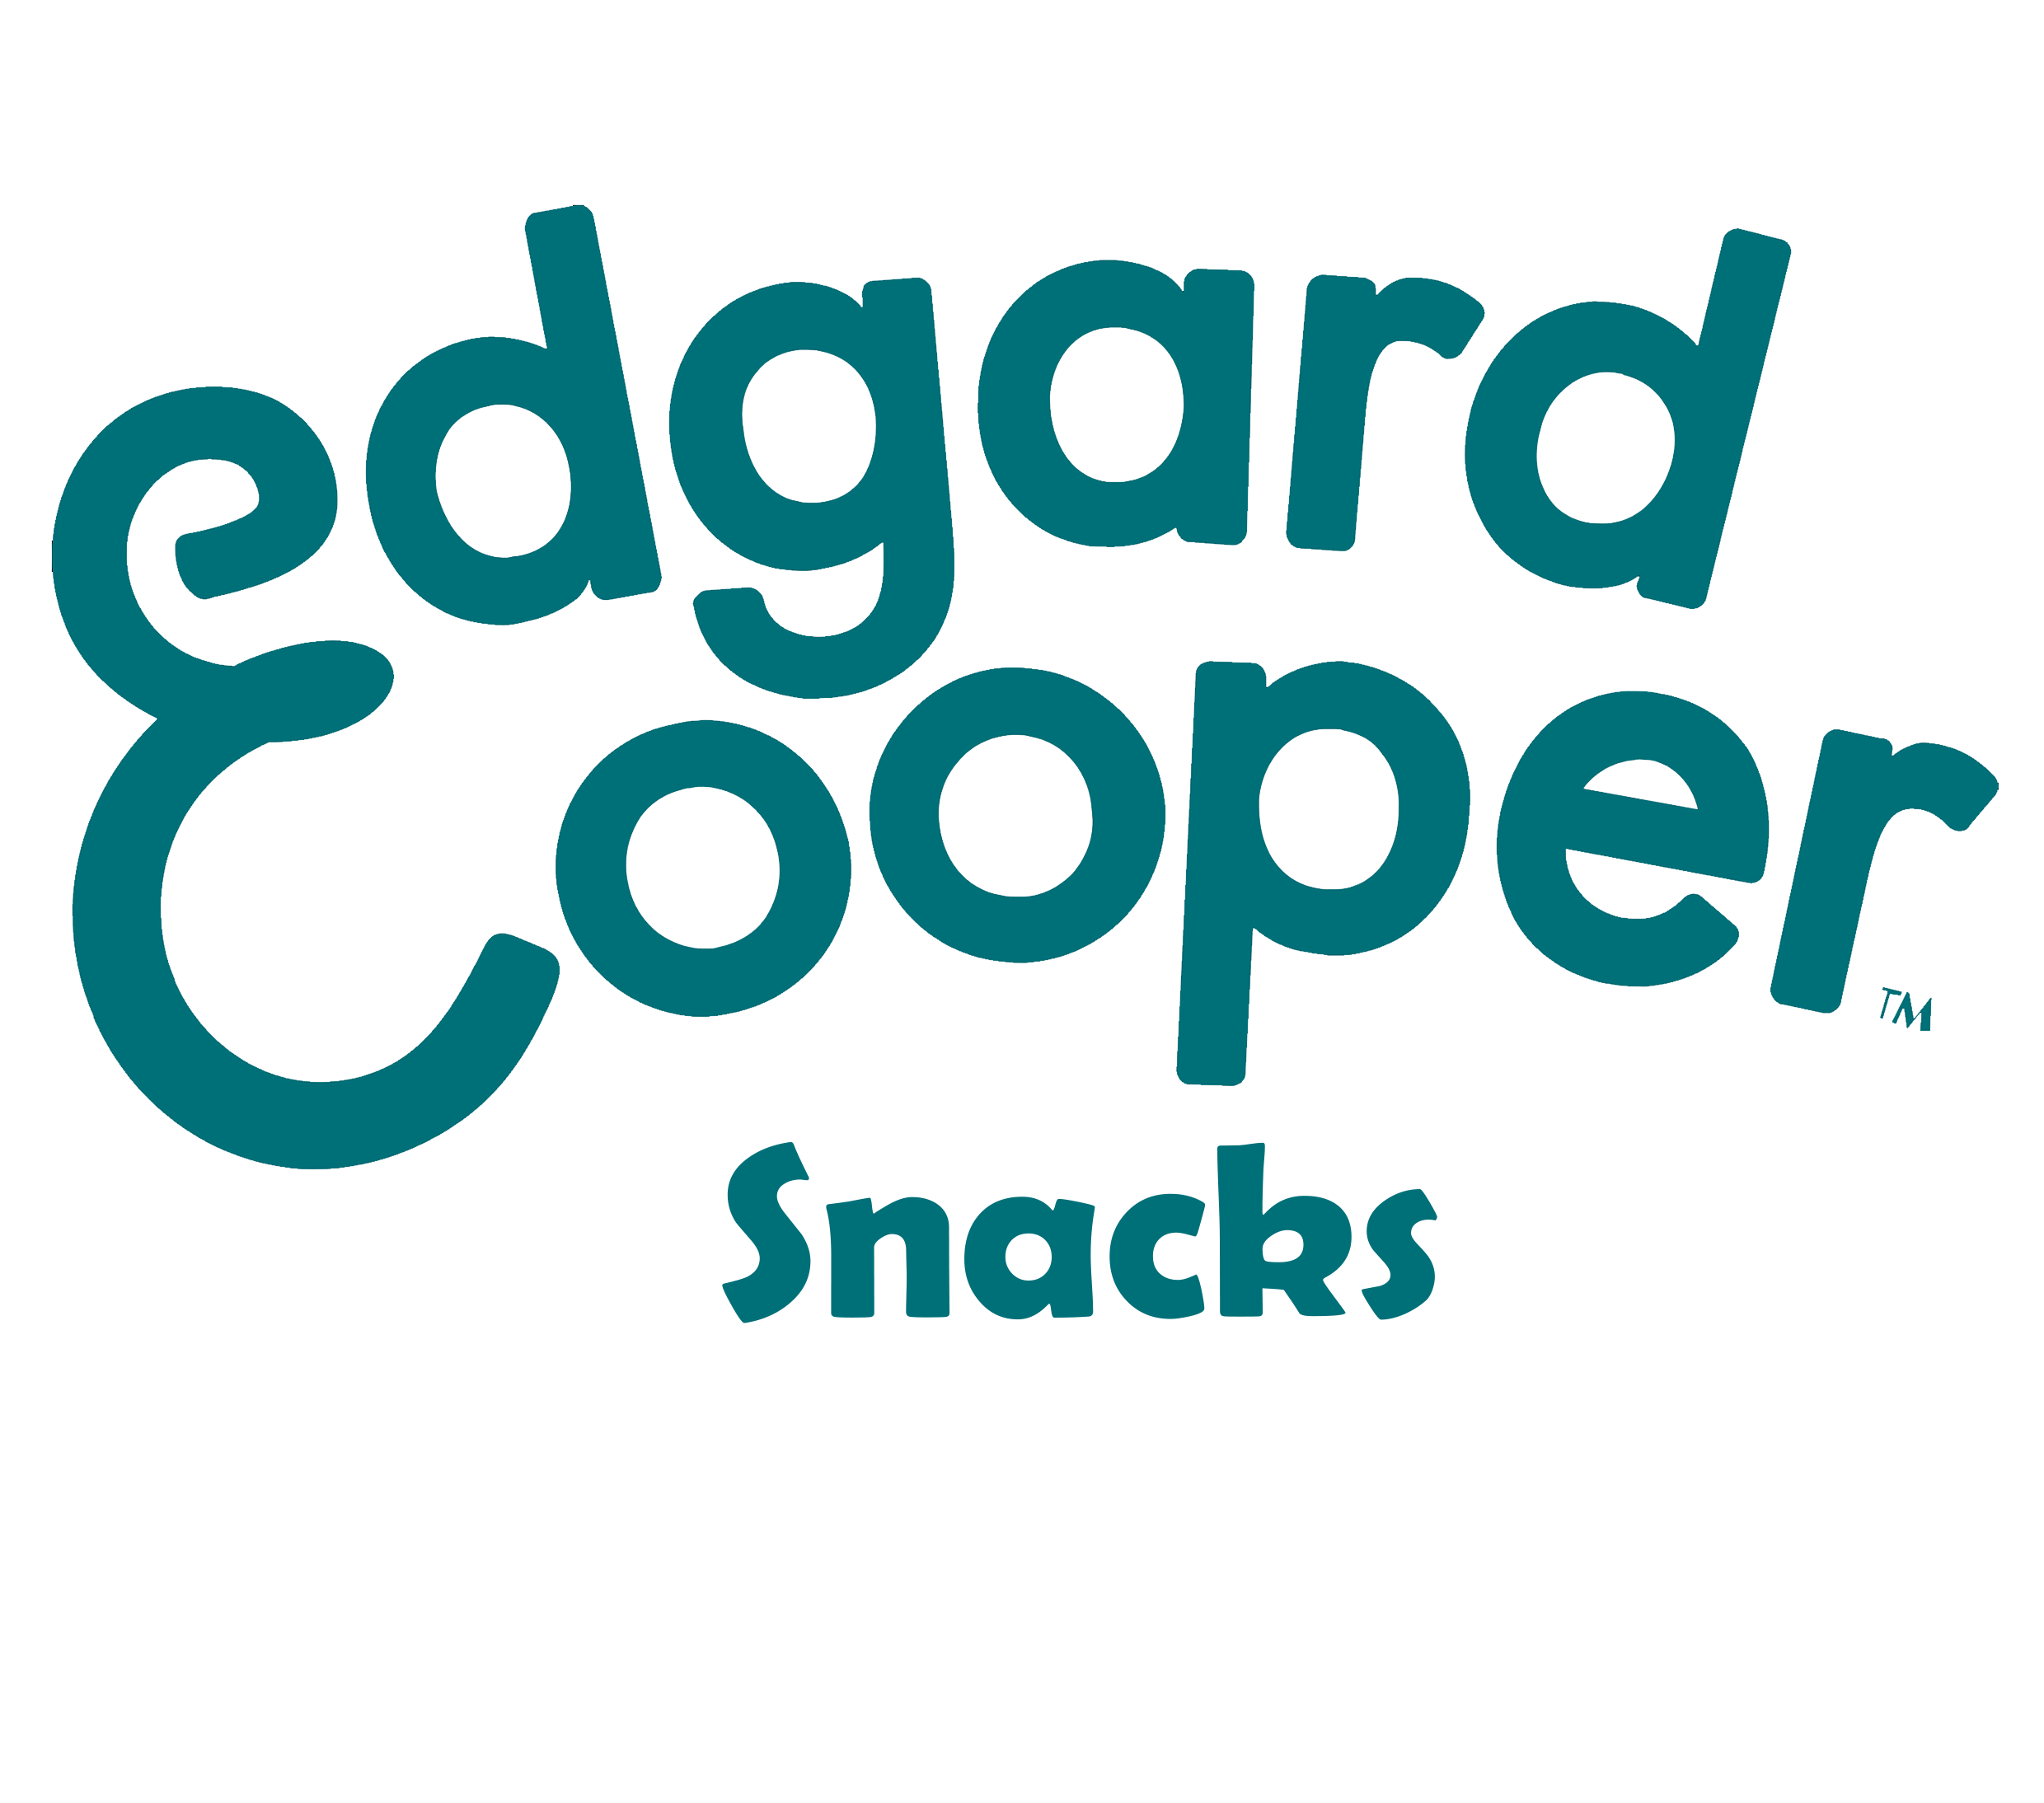 Edgard & Cooper Snacks